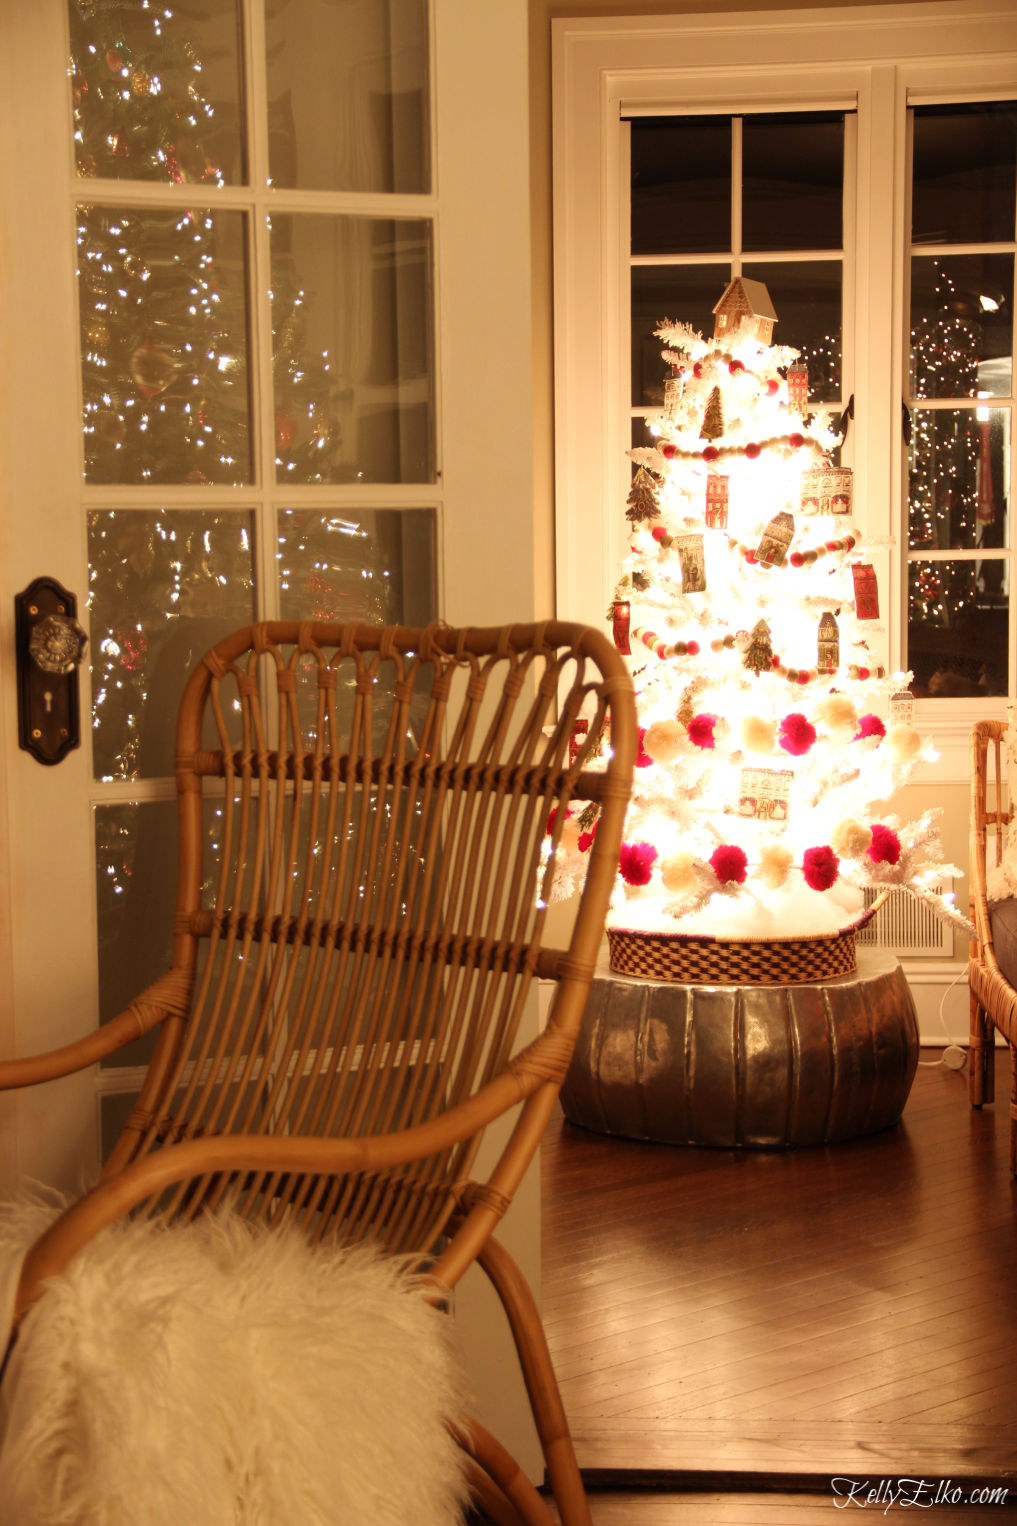 Tour this Christmas home by the glowing lights at night with a beautiful white tree kellyelko.com #christmasdecor #christmastree #whitetree #whitechristmastree #christmasglow #christmaslights #farmhousechristmas #farmhousedecor #rattanfurniture #kellyelko